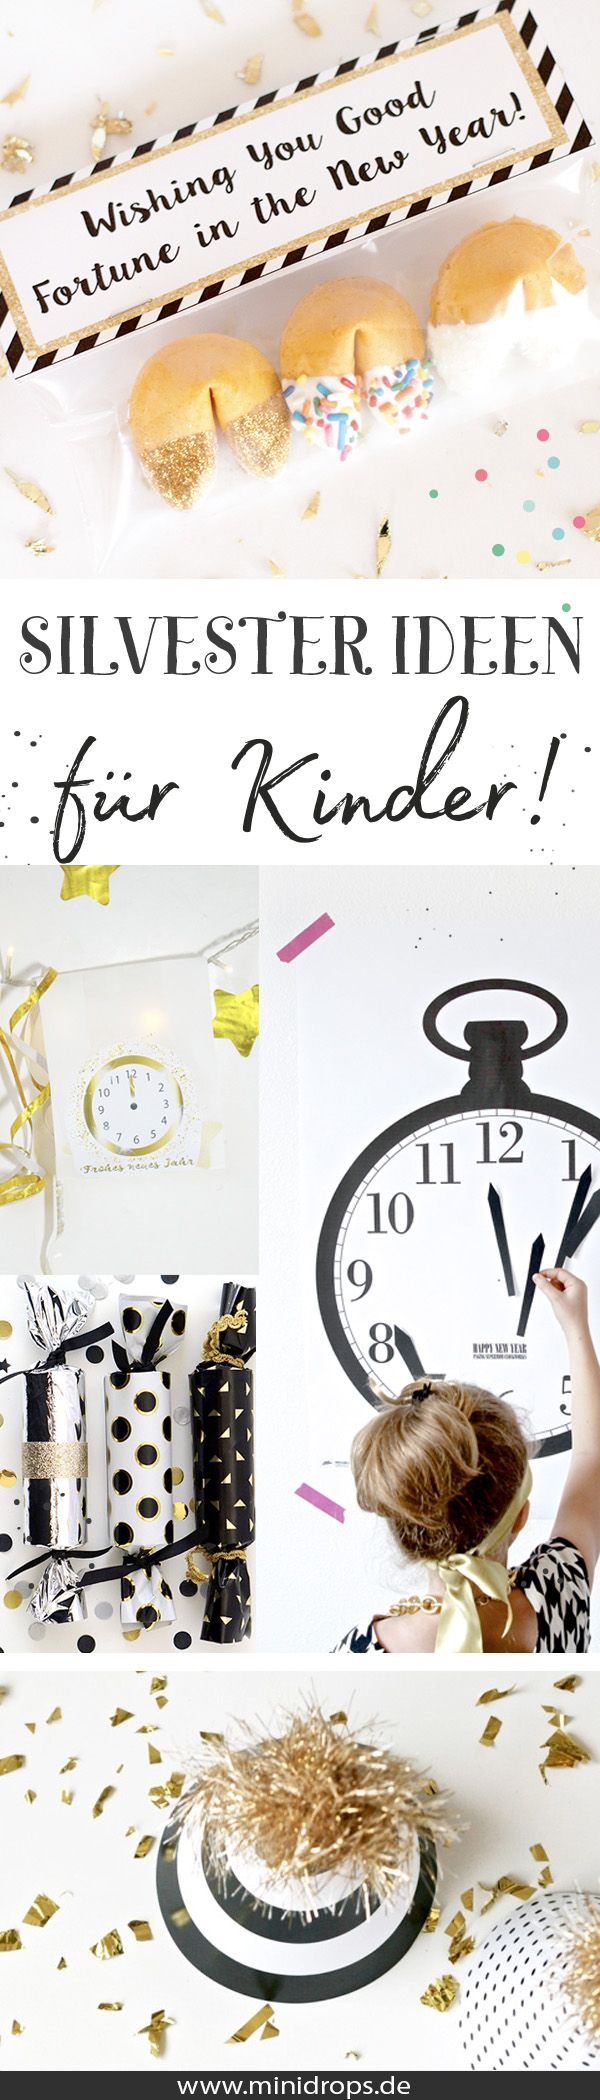 silvester mit kindern feiern tipps und ideen minidrops diy party ideen pinterest. Black Bedroom Furniture Sets. Home Design Ideas